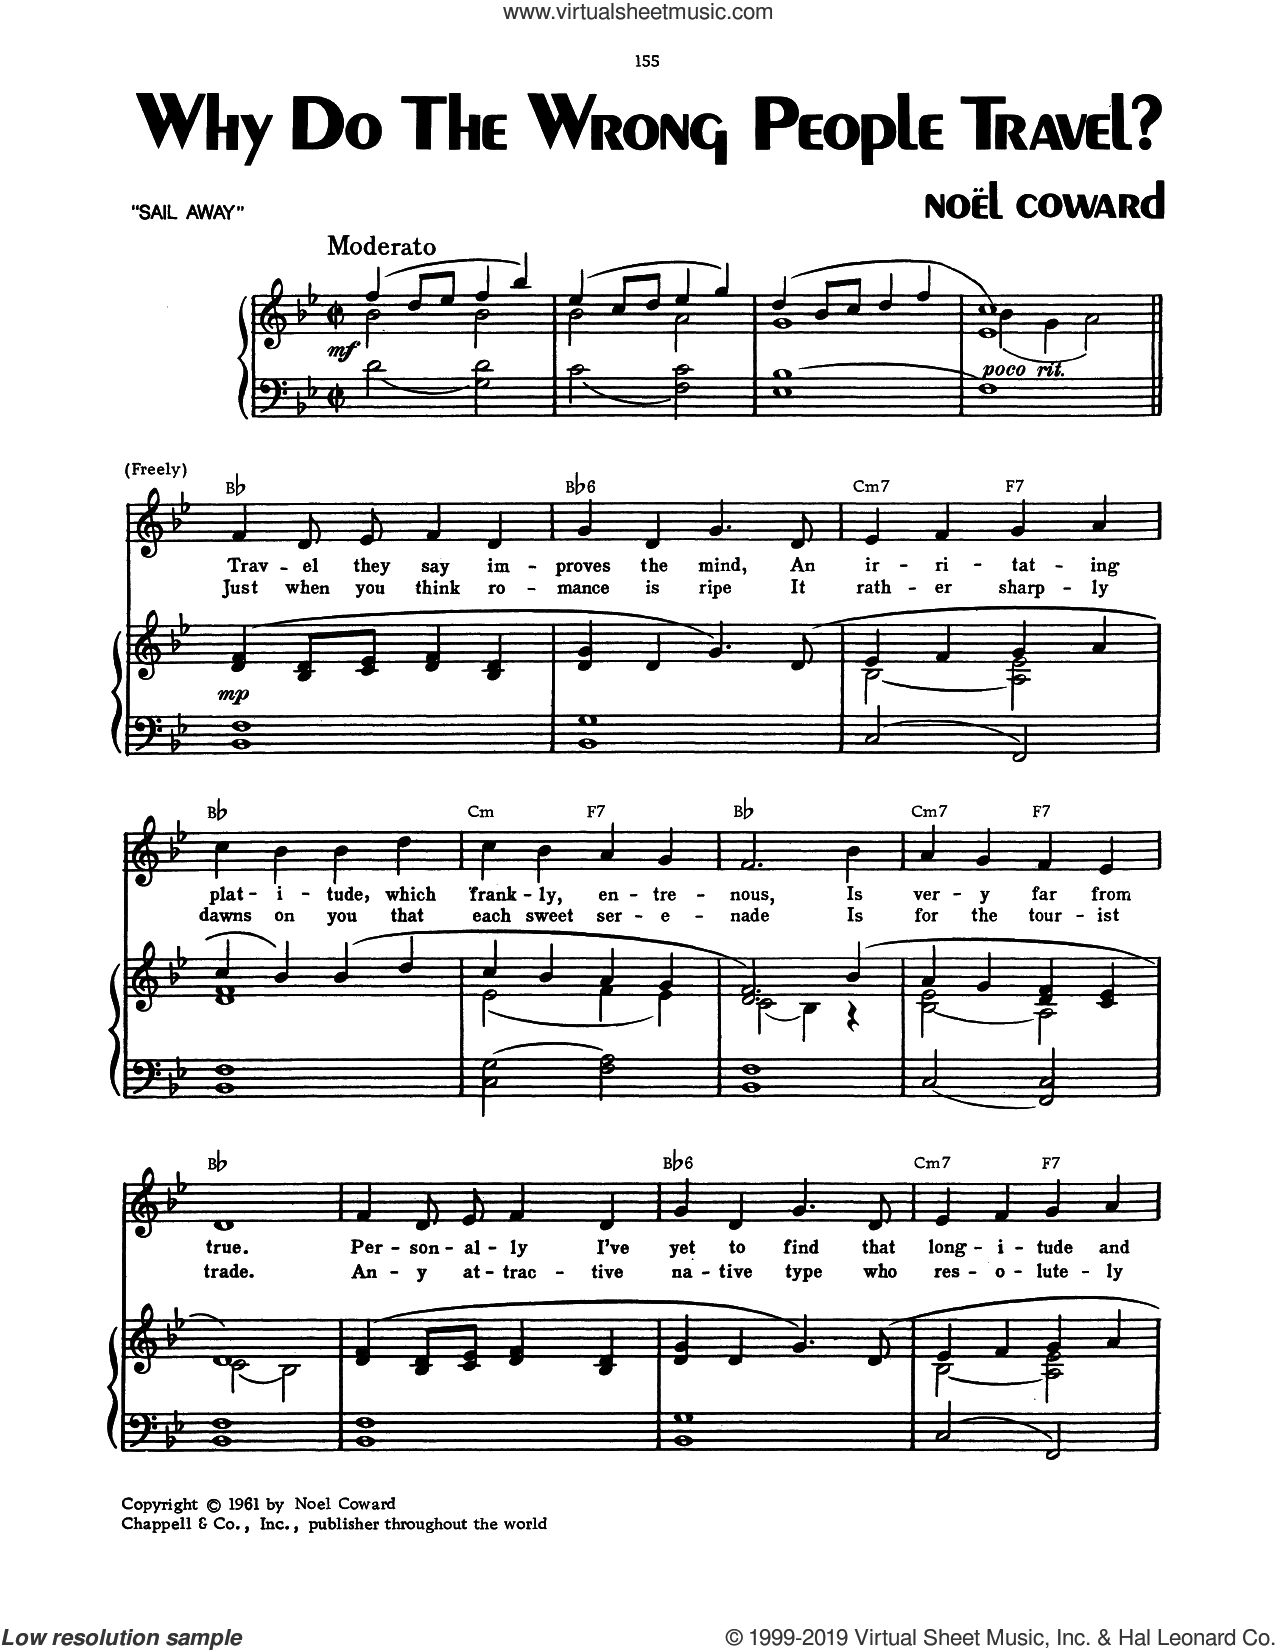 Why Do The Wrong People Travel? sheet music for voice, piano or guitar by Noel Coward, intermediate skill level